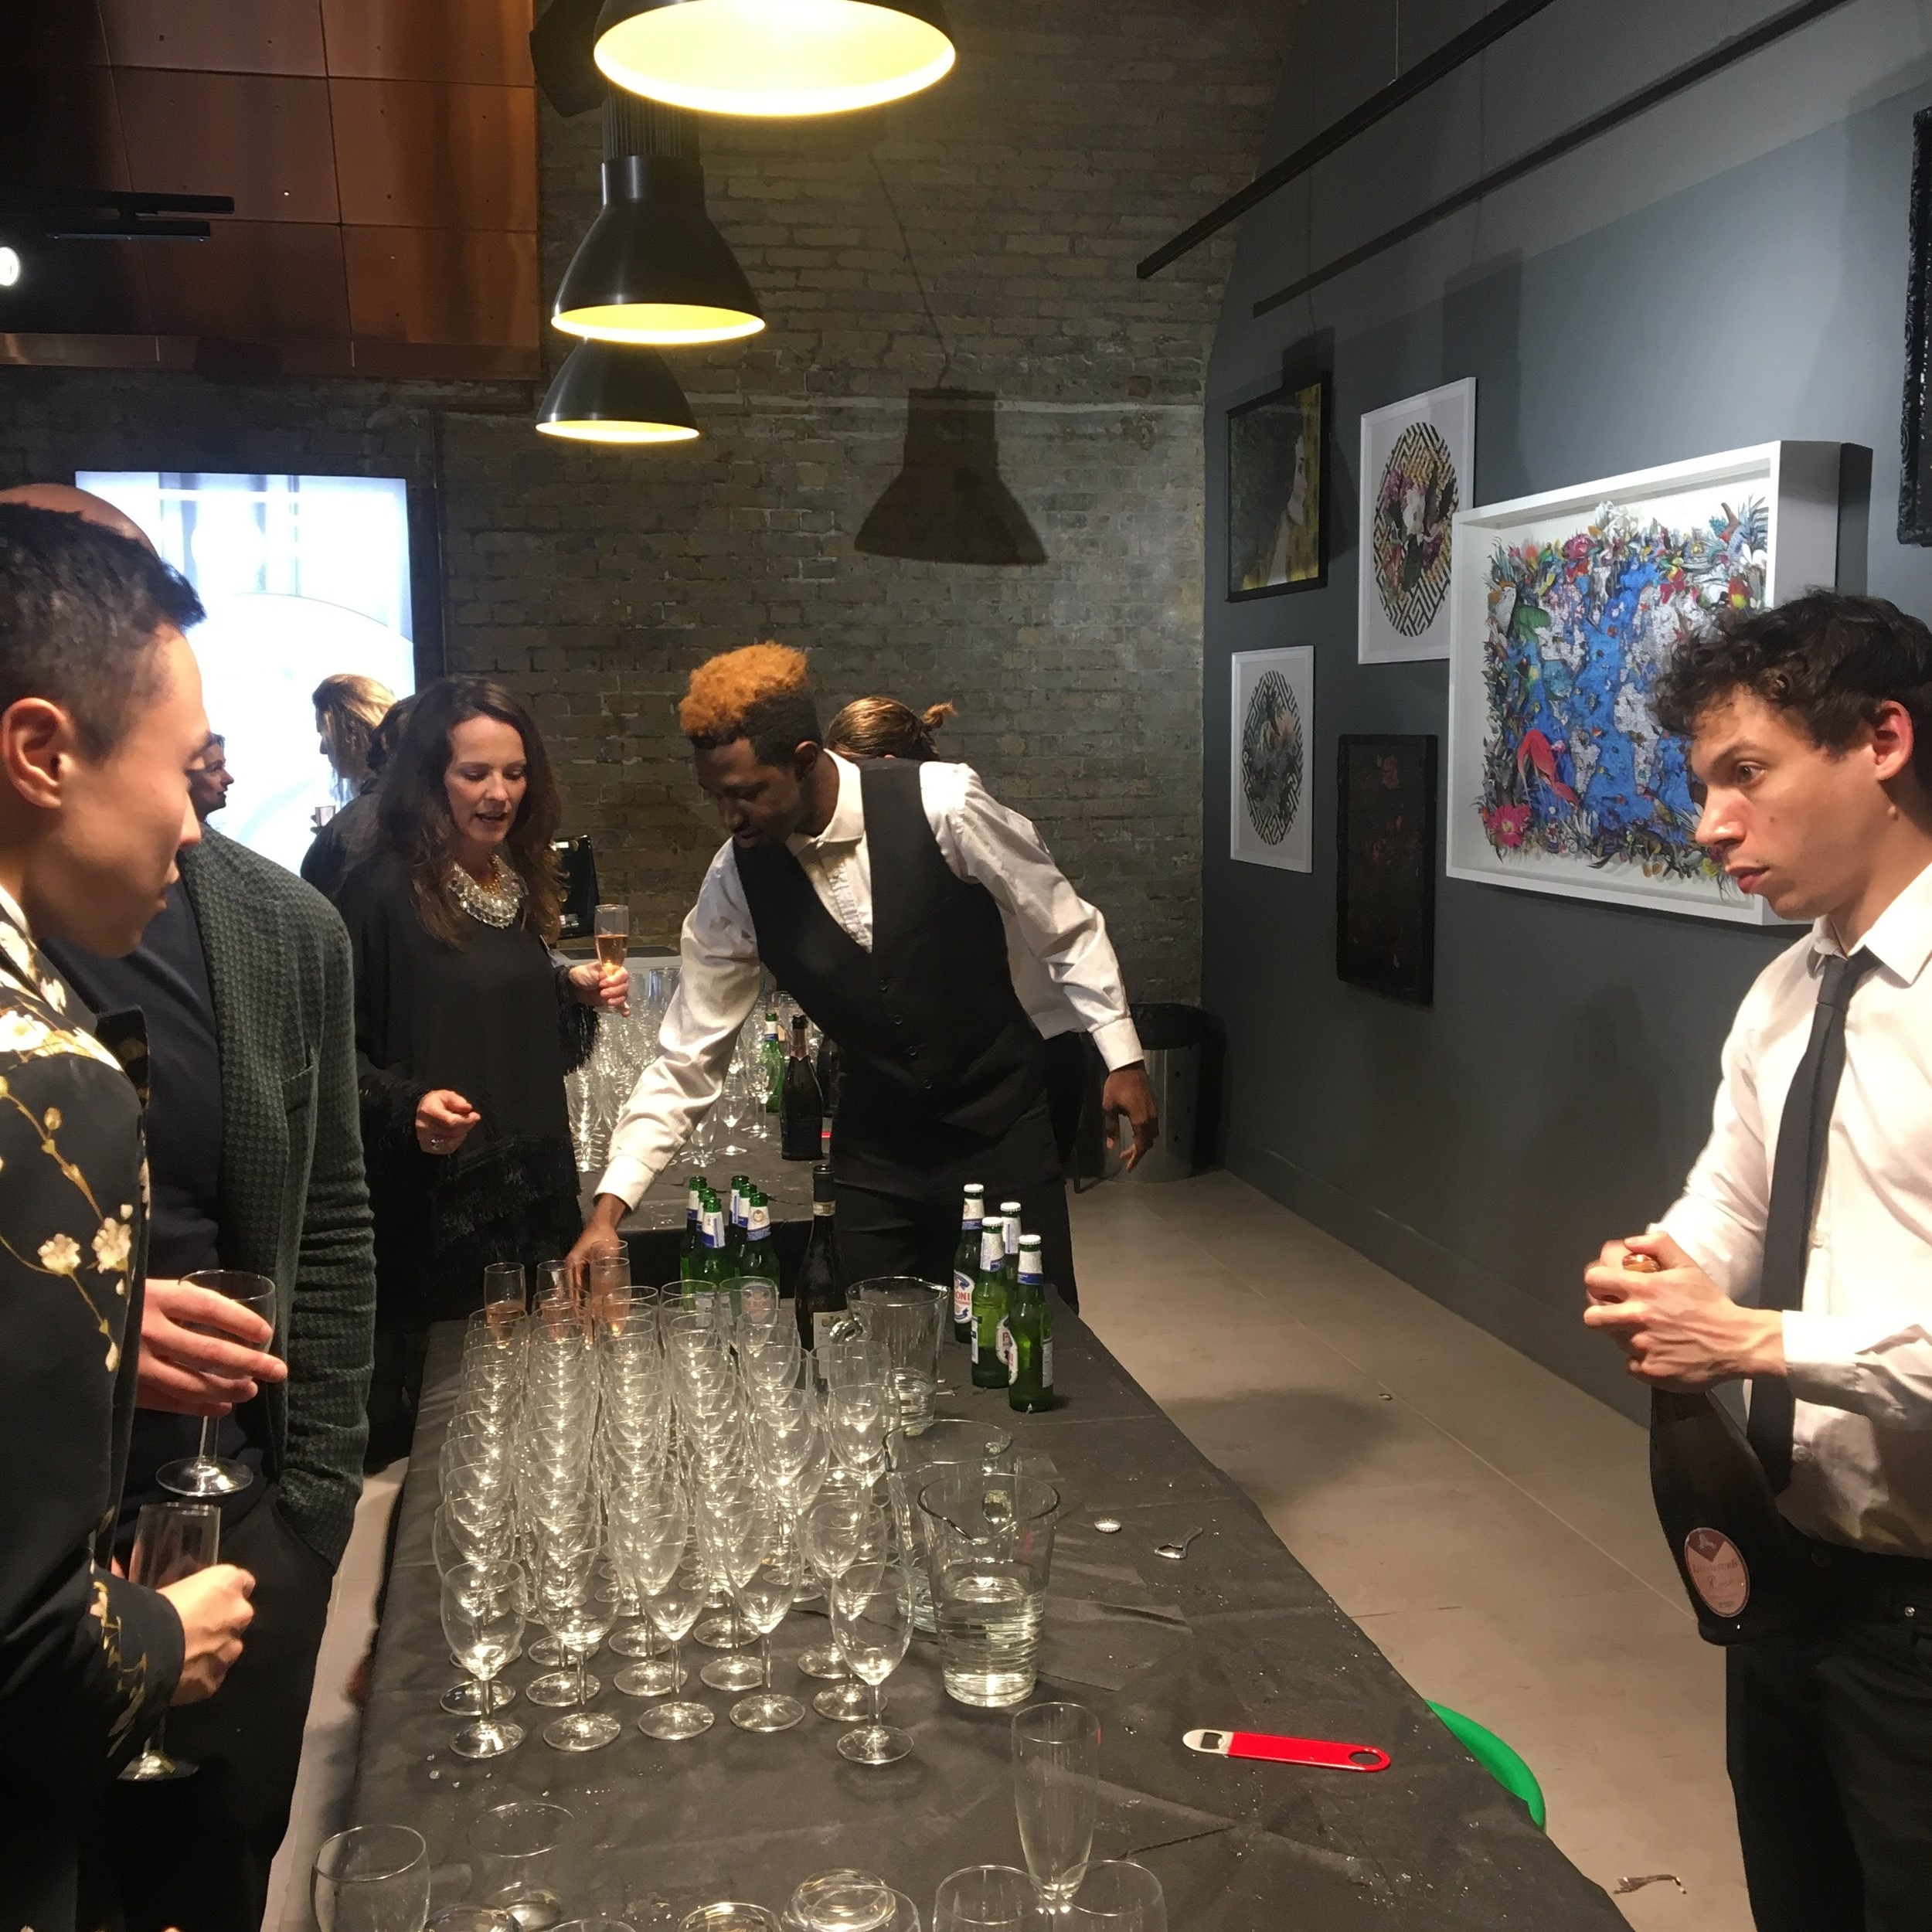 Corporate Christmas event drinks by Fresh Mint